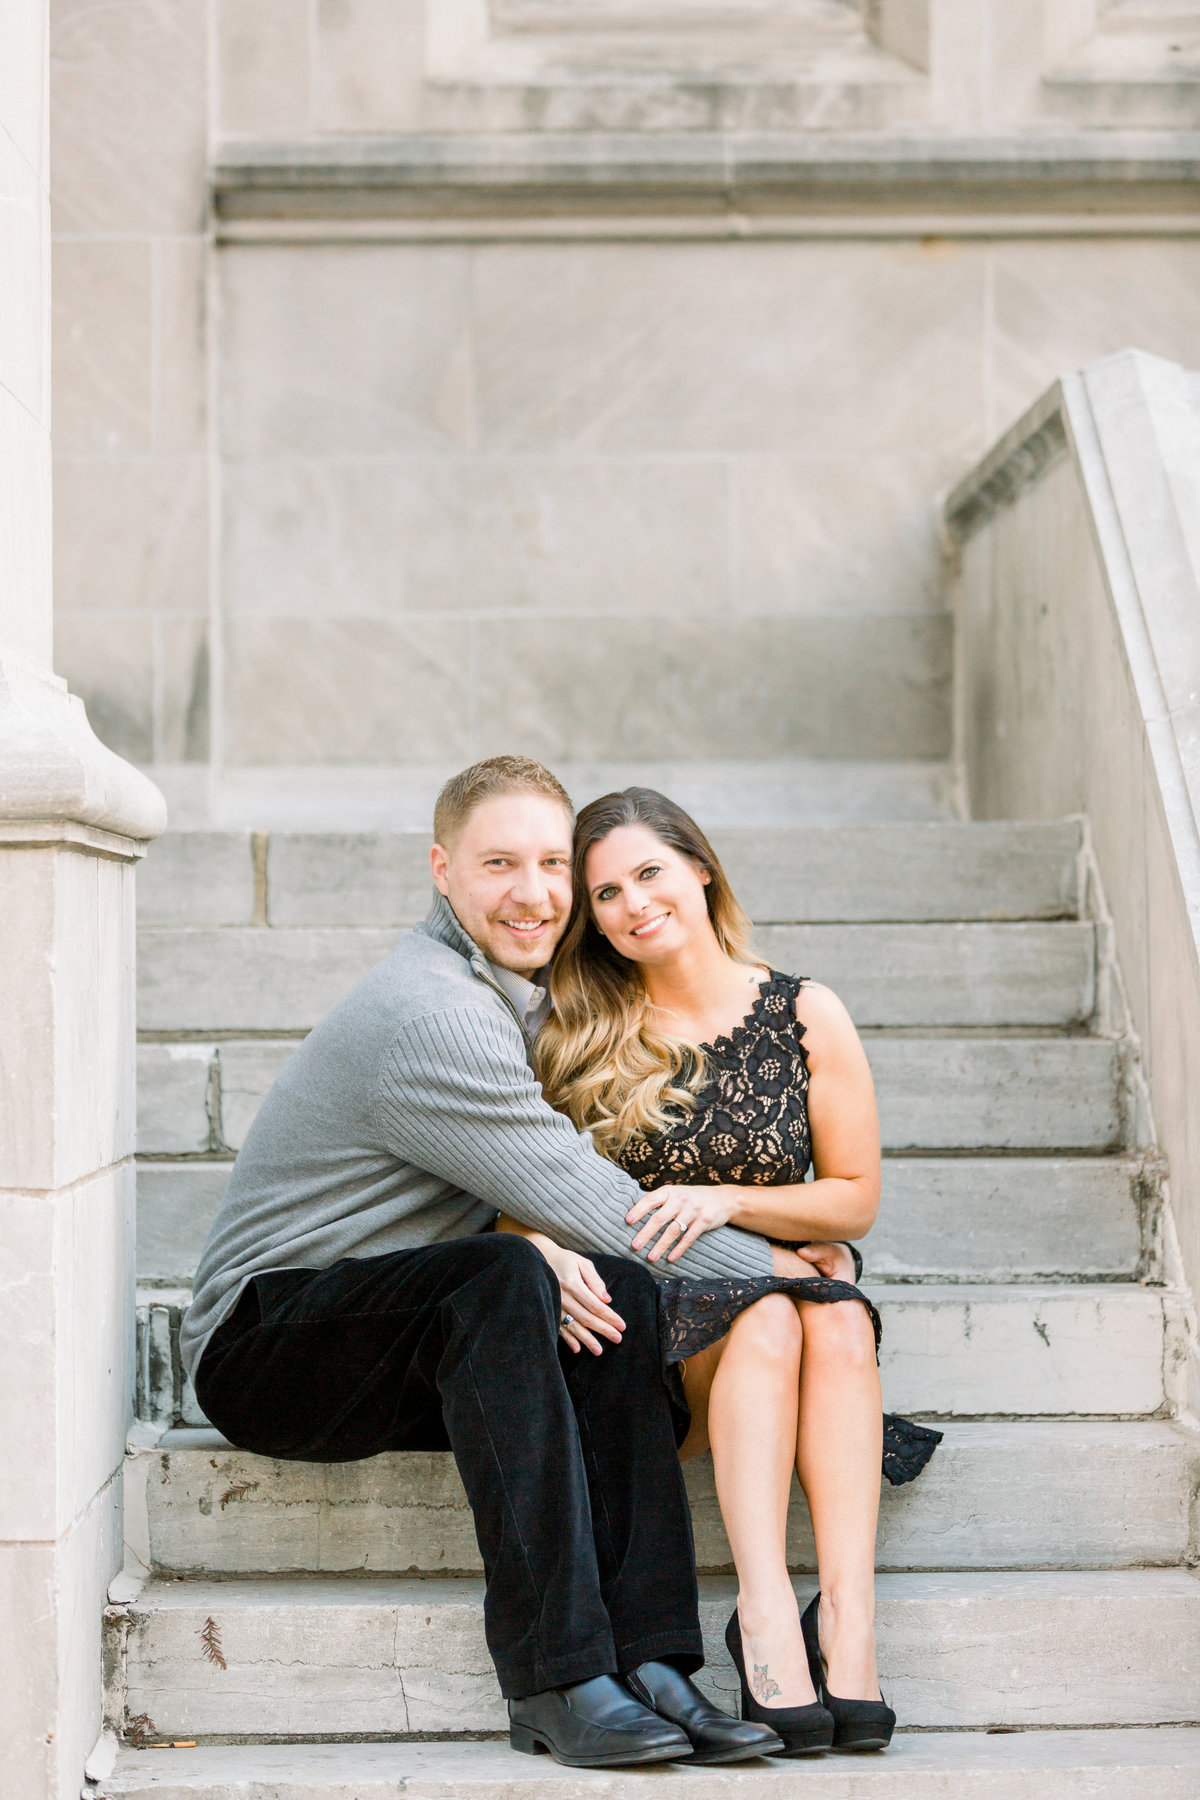 Galleries-Nathan and Jaime Engagement Session-0010